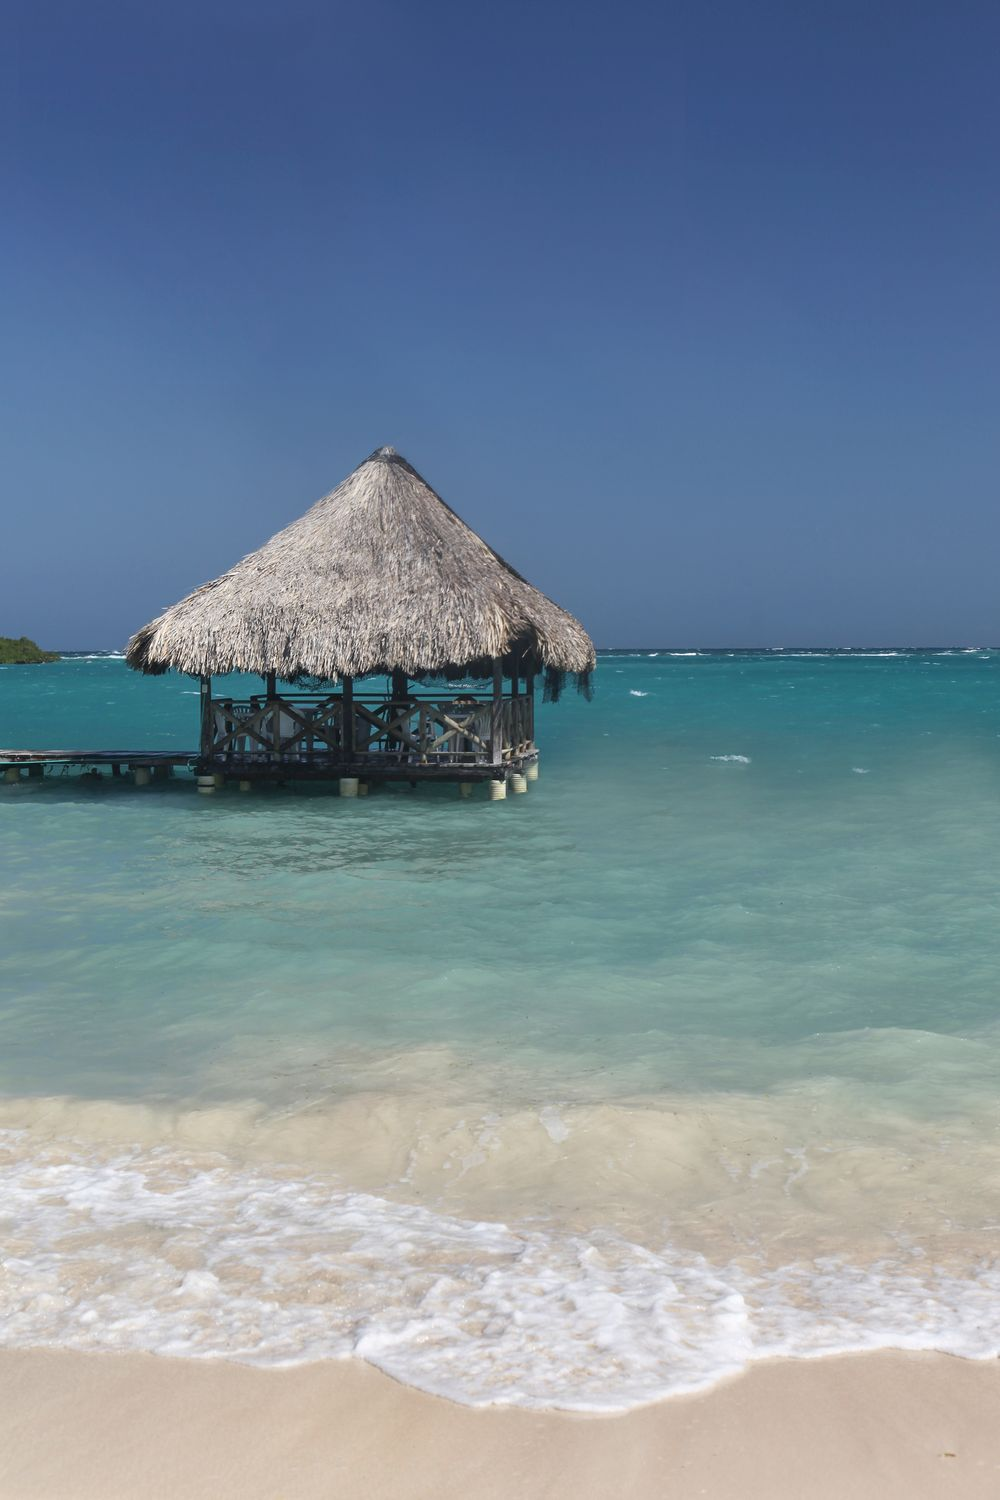 Beach shack on the blue ocean in Cartagena Colombia